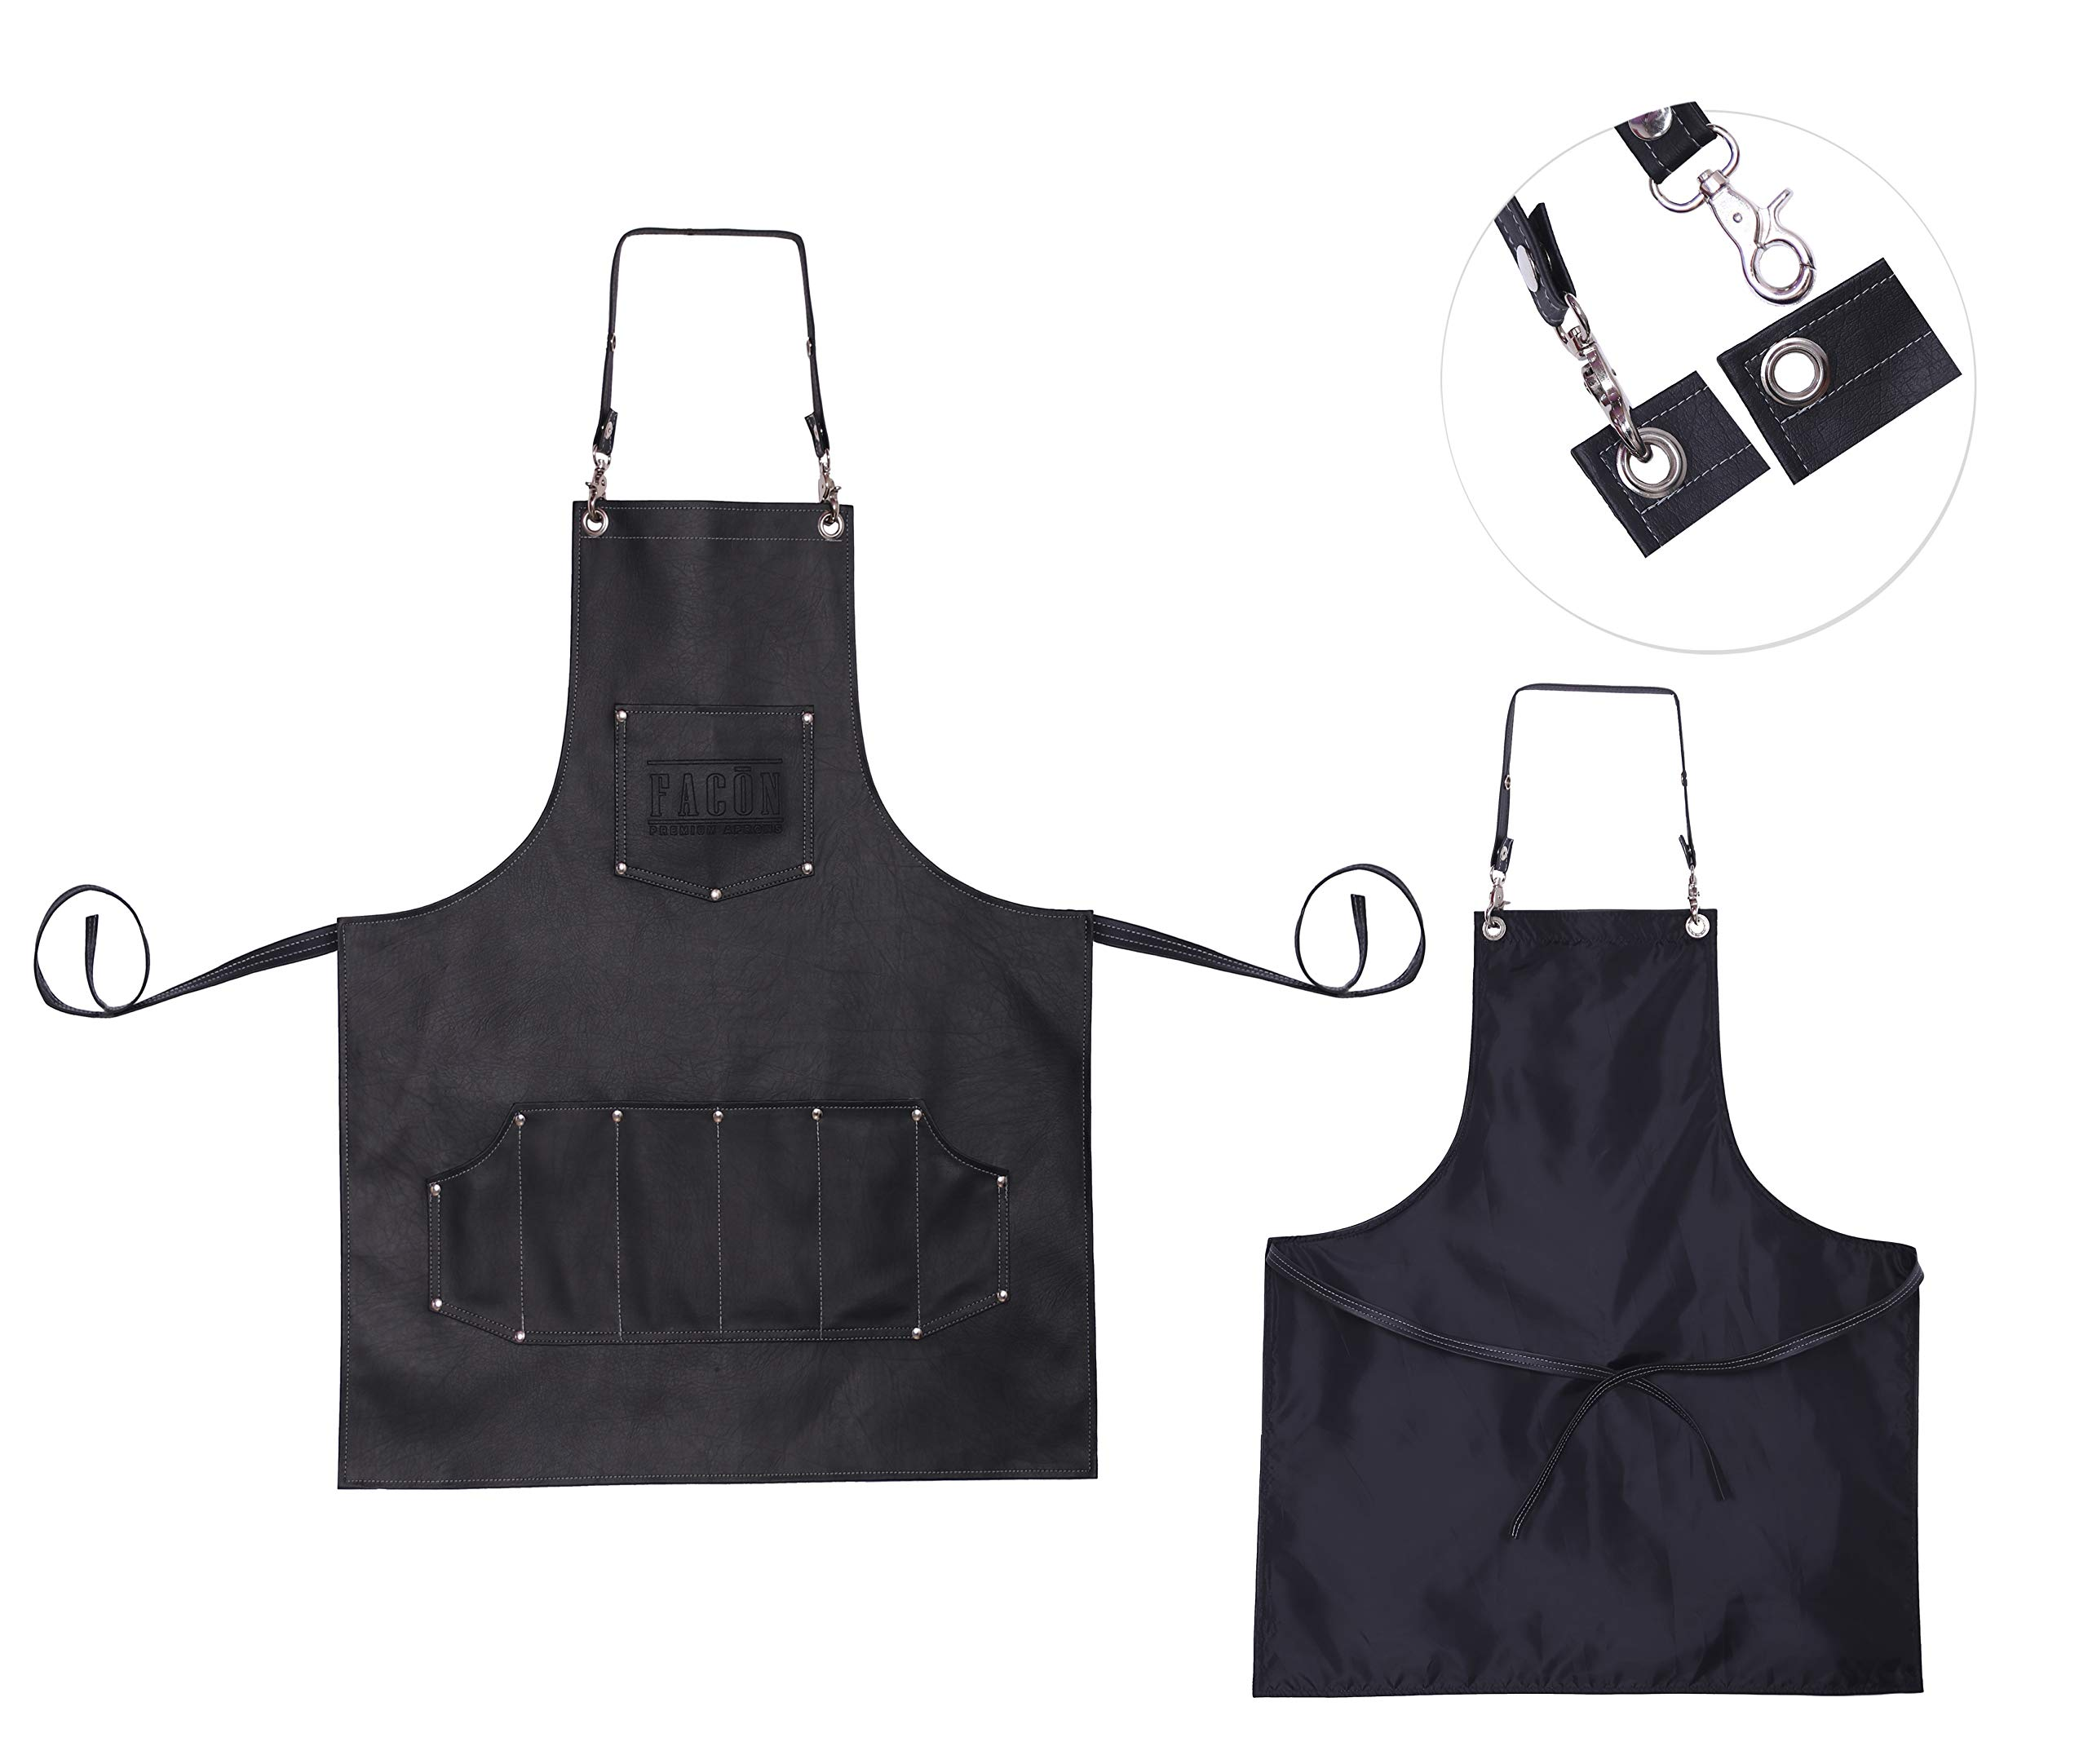 Facón Professional Leather Hair Cutting Hairdressing Barber Apron Cape for Salon Hairstylist - Multi-use, Adjustable with 7 Pockets - Heavy Duty Premium Quality - Limited Edition - 30'' x 24'' (Black) by FACON (Image #8)